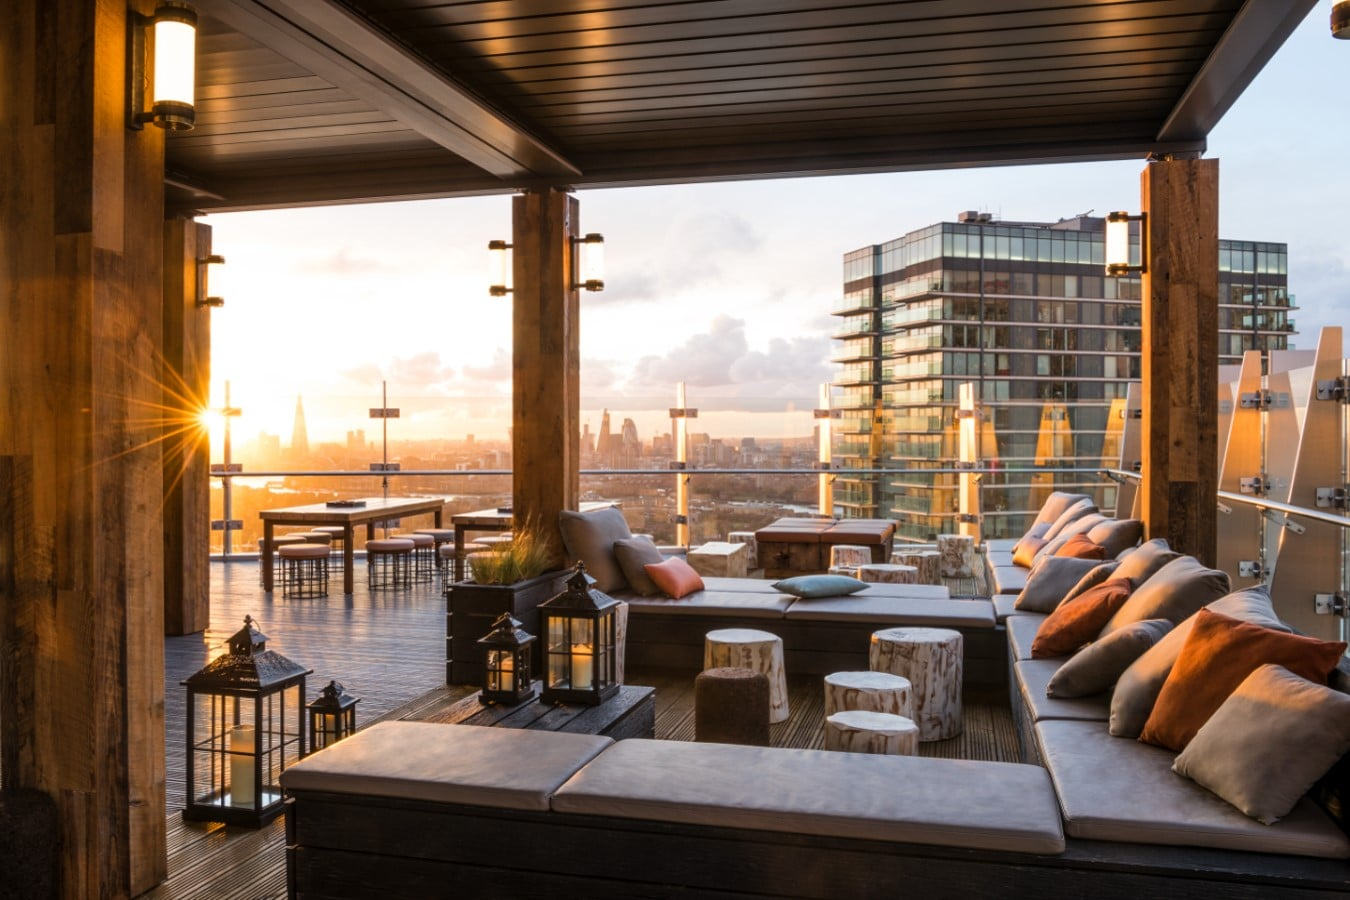 Bokan - Canary Wharf restaurant with view over London